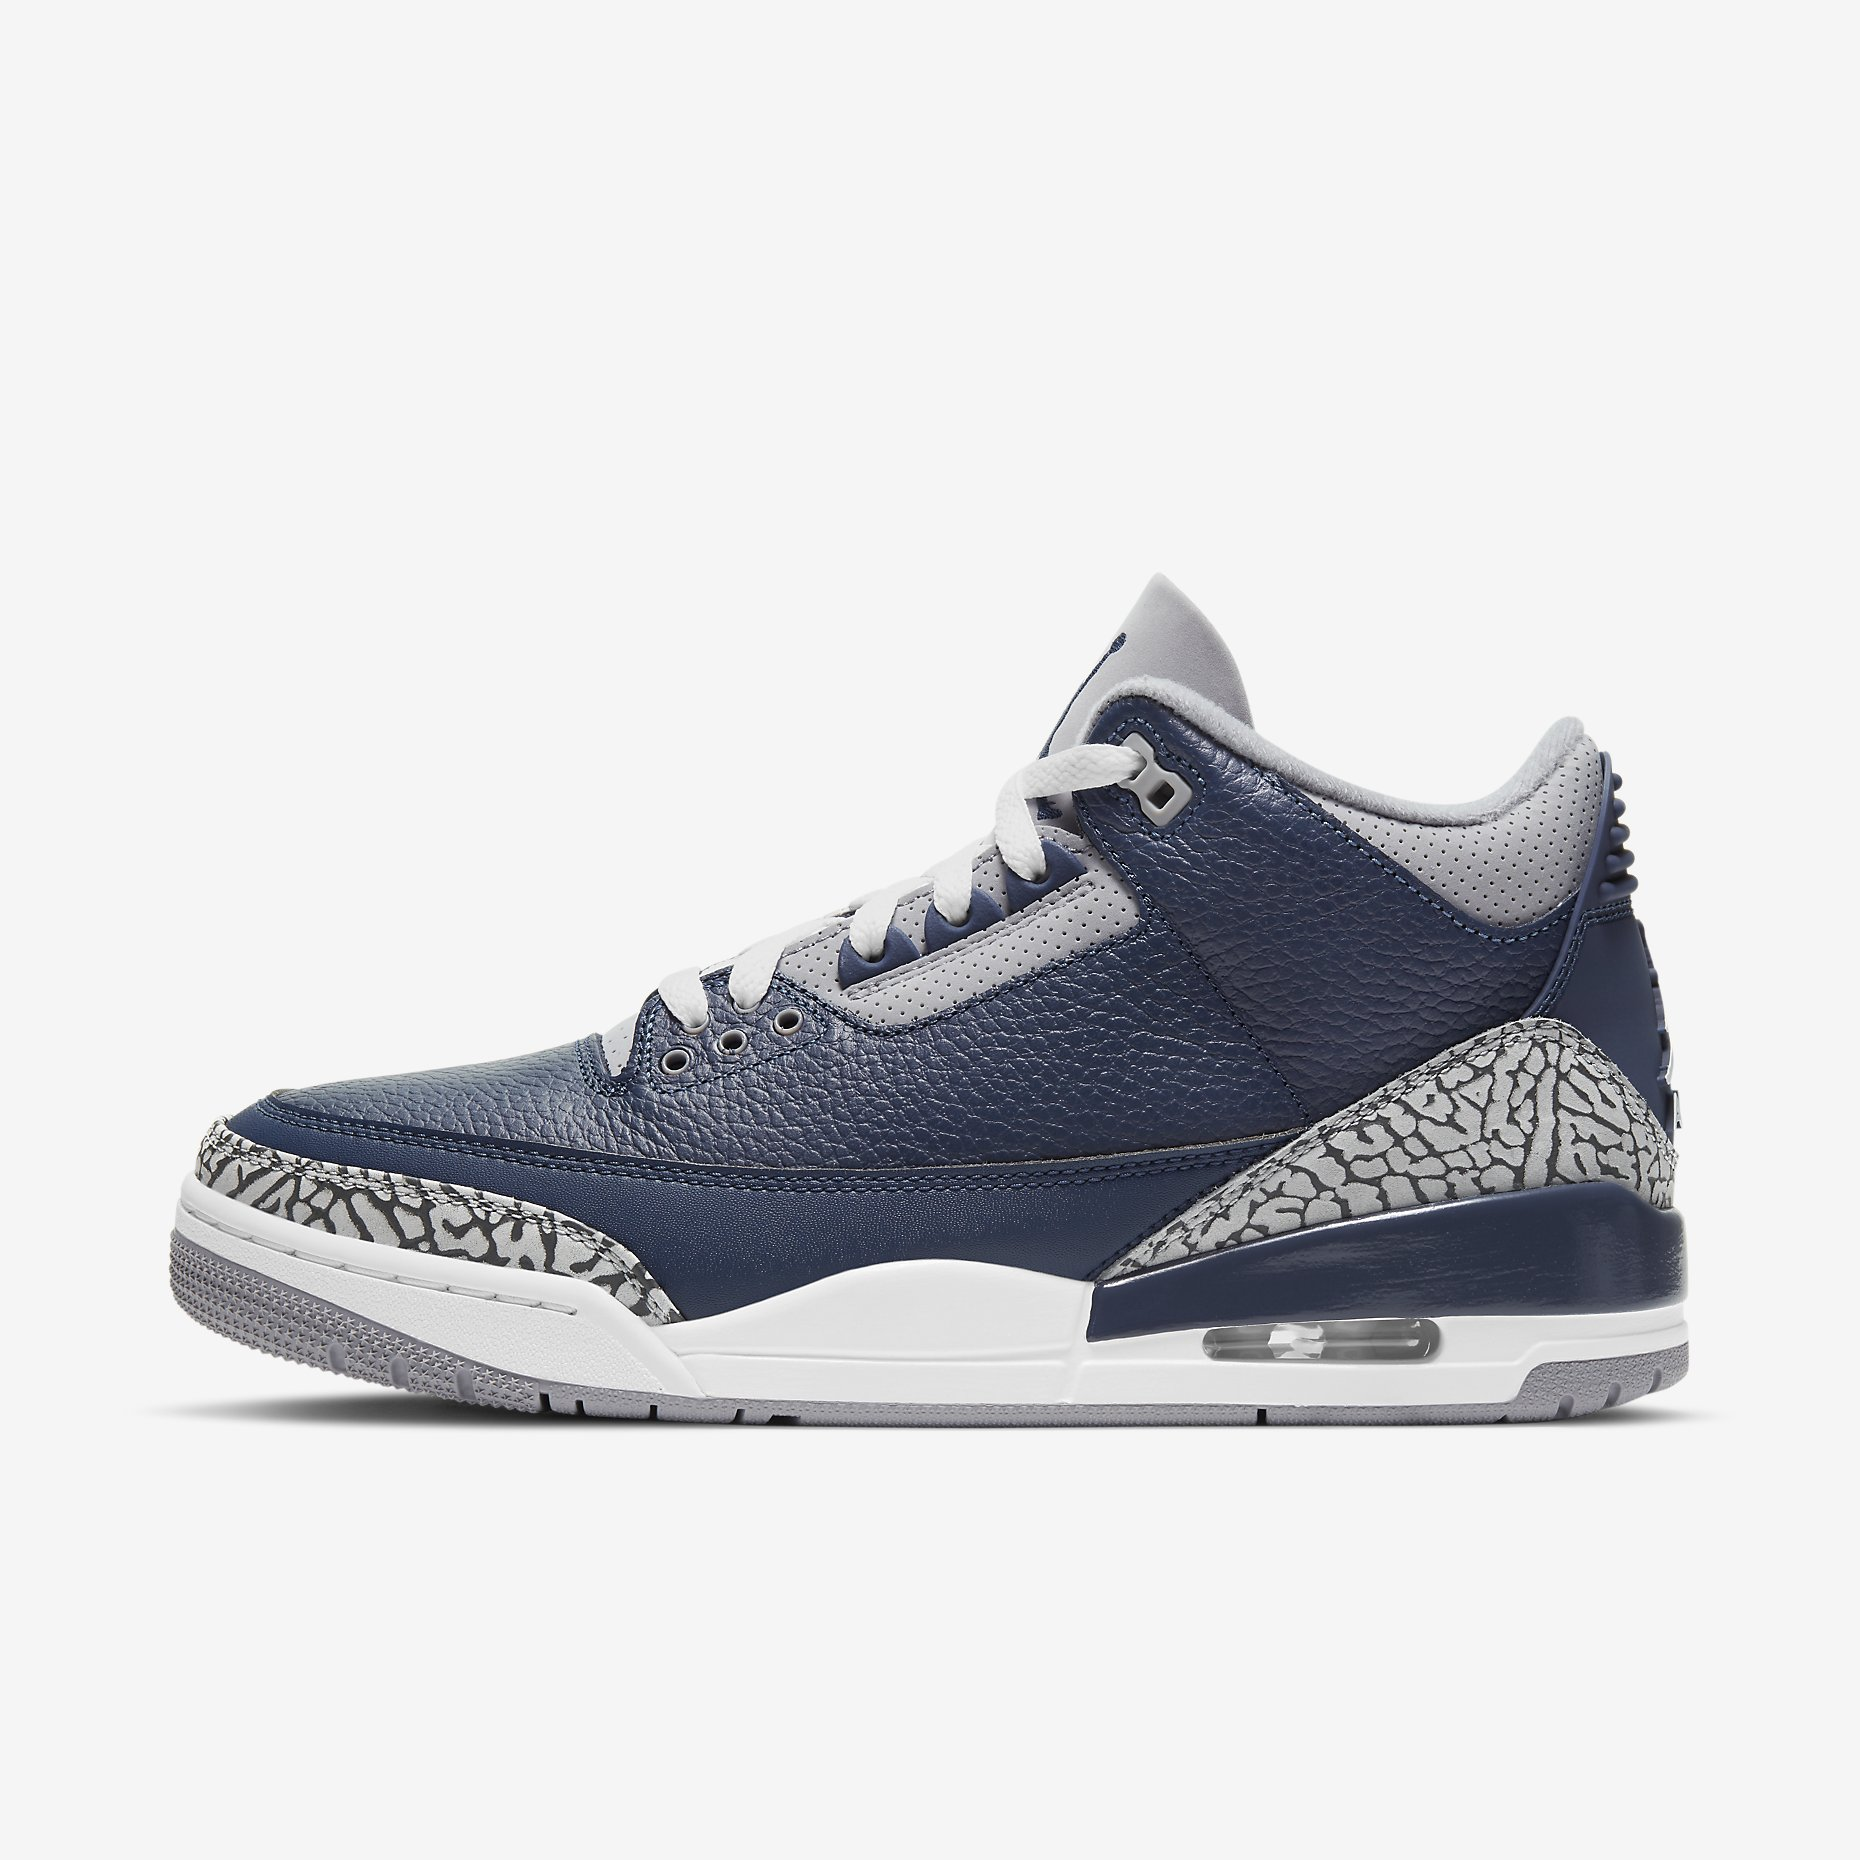 Air Jordan 3 Retro 'Midnight Navy'}